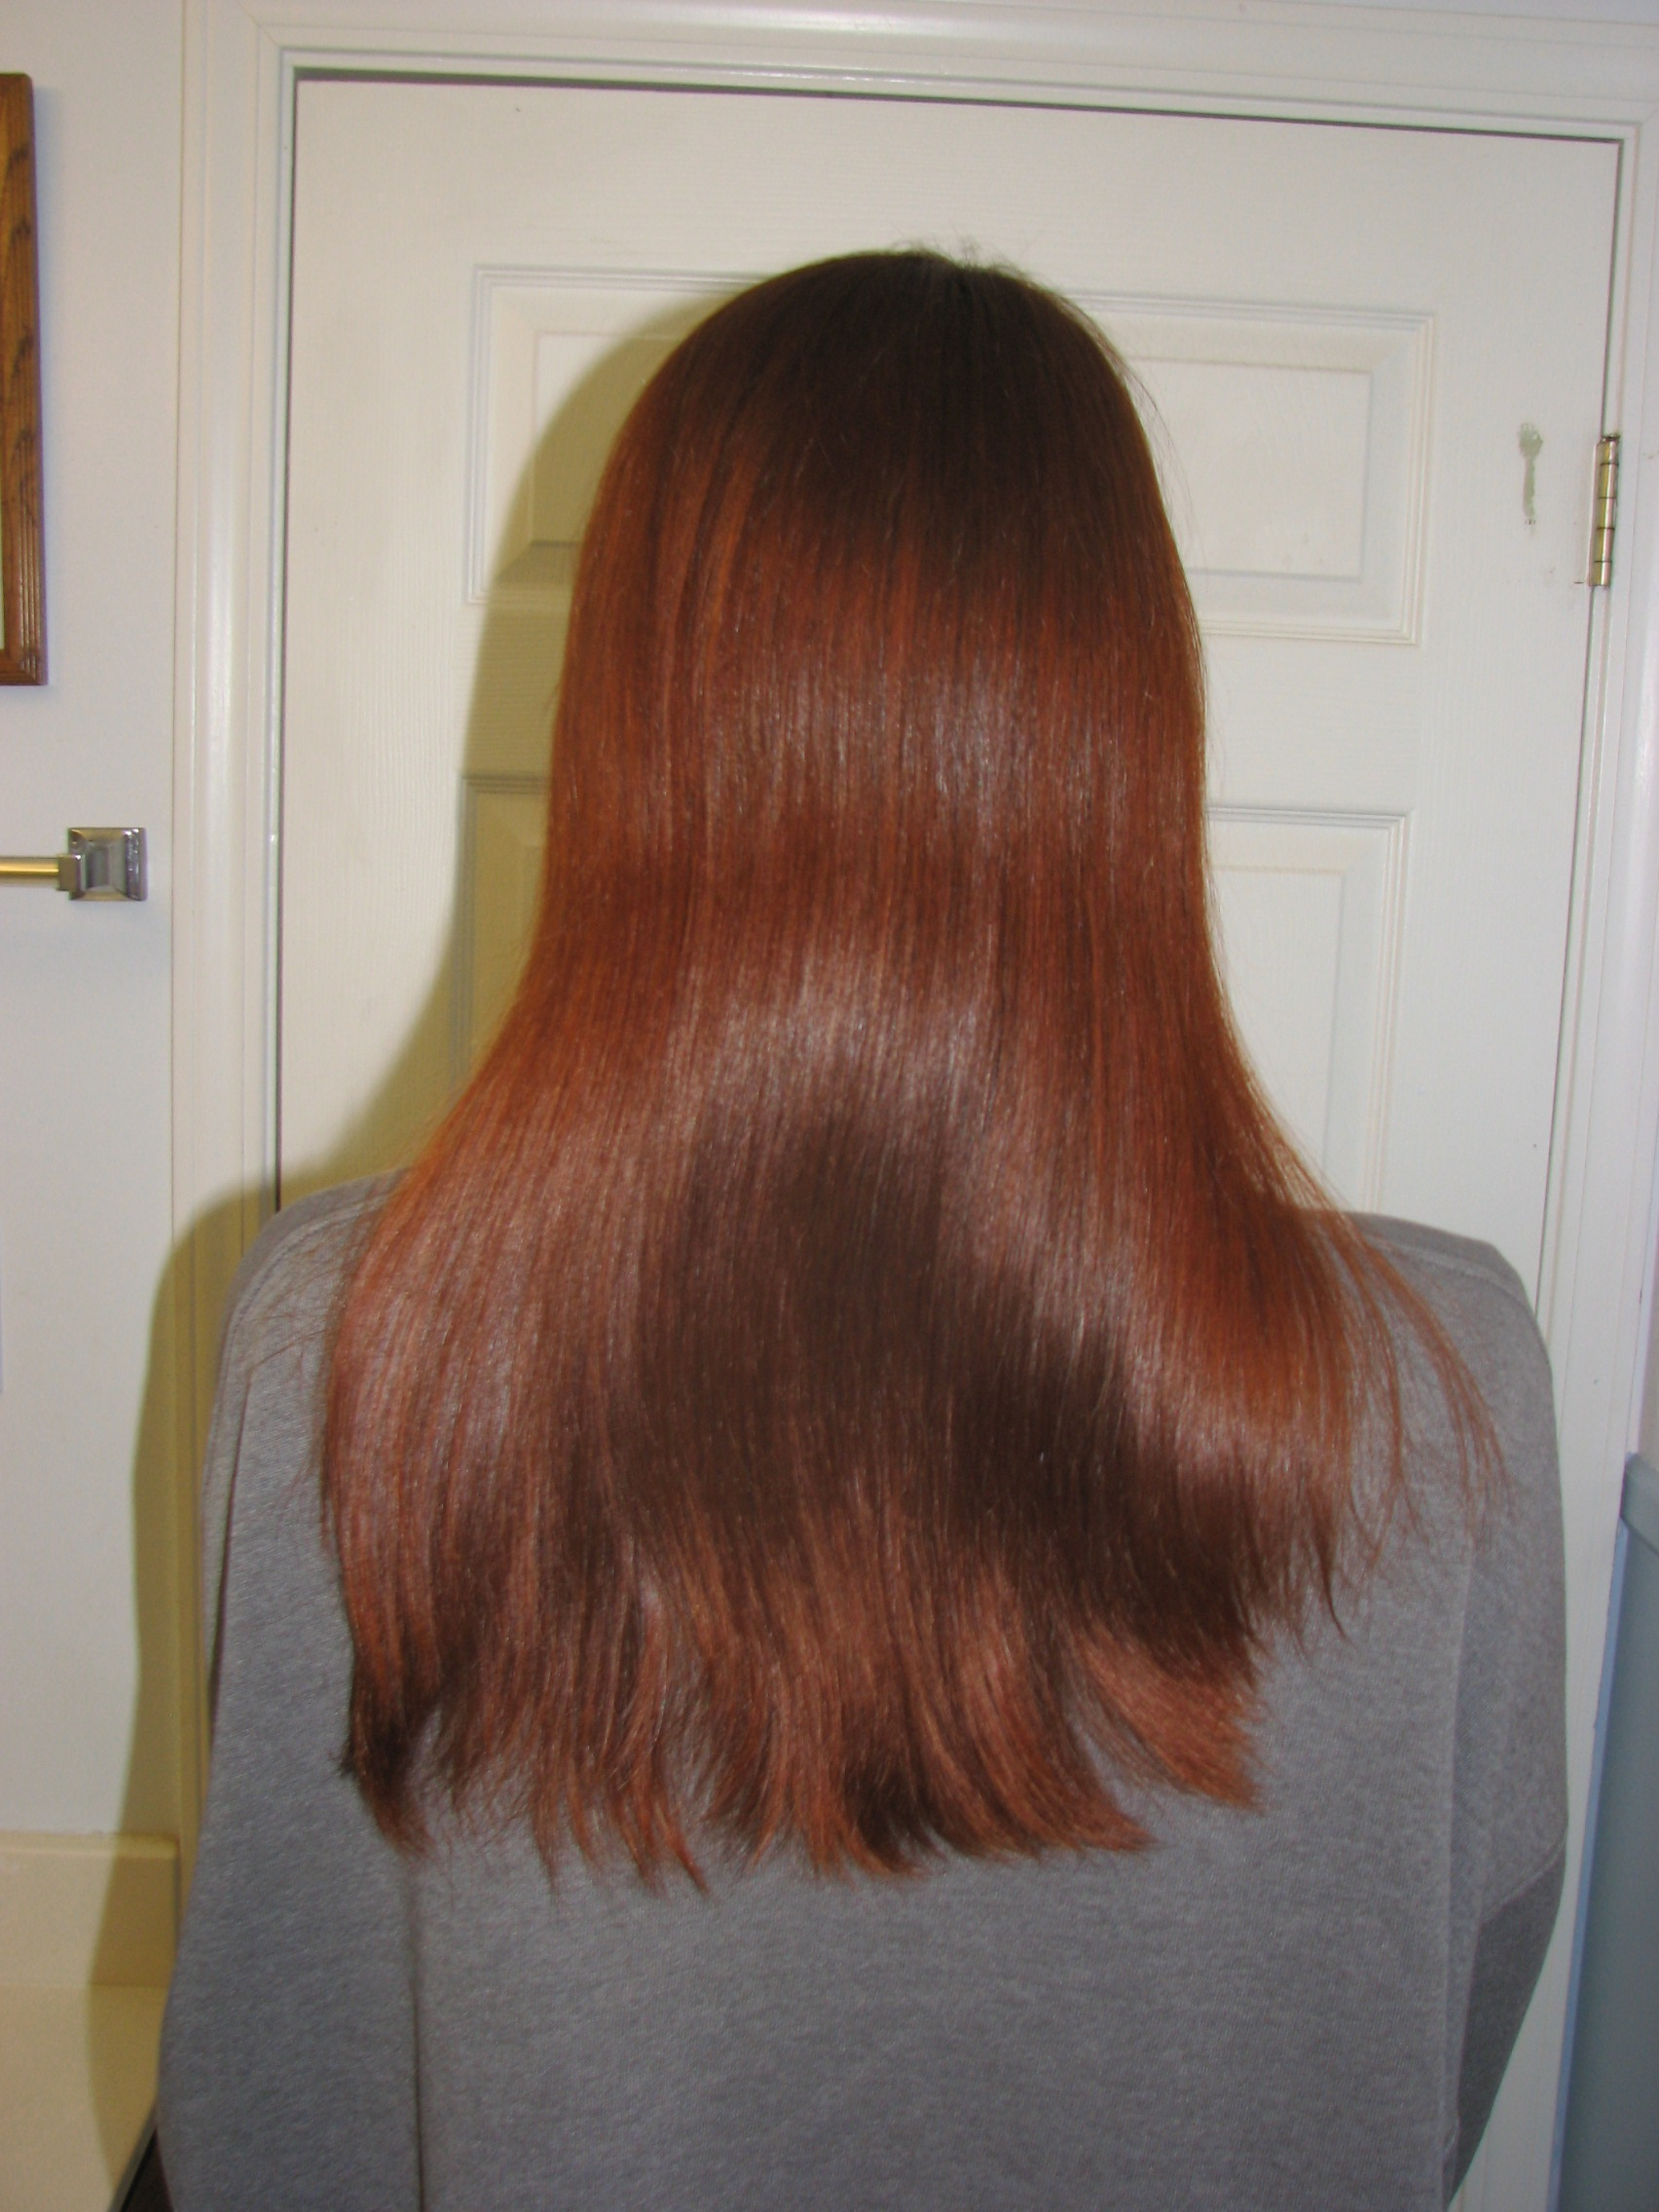 Henna Hair Dye Color Before And After Treatment Dye Read Dye Lush